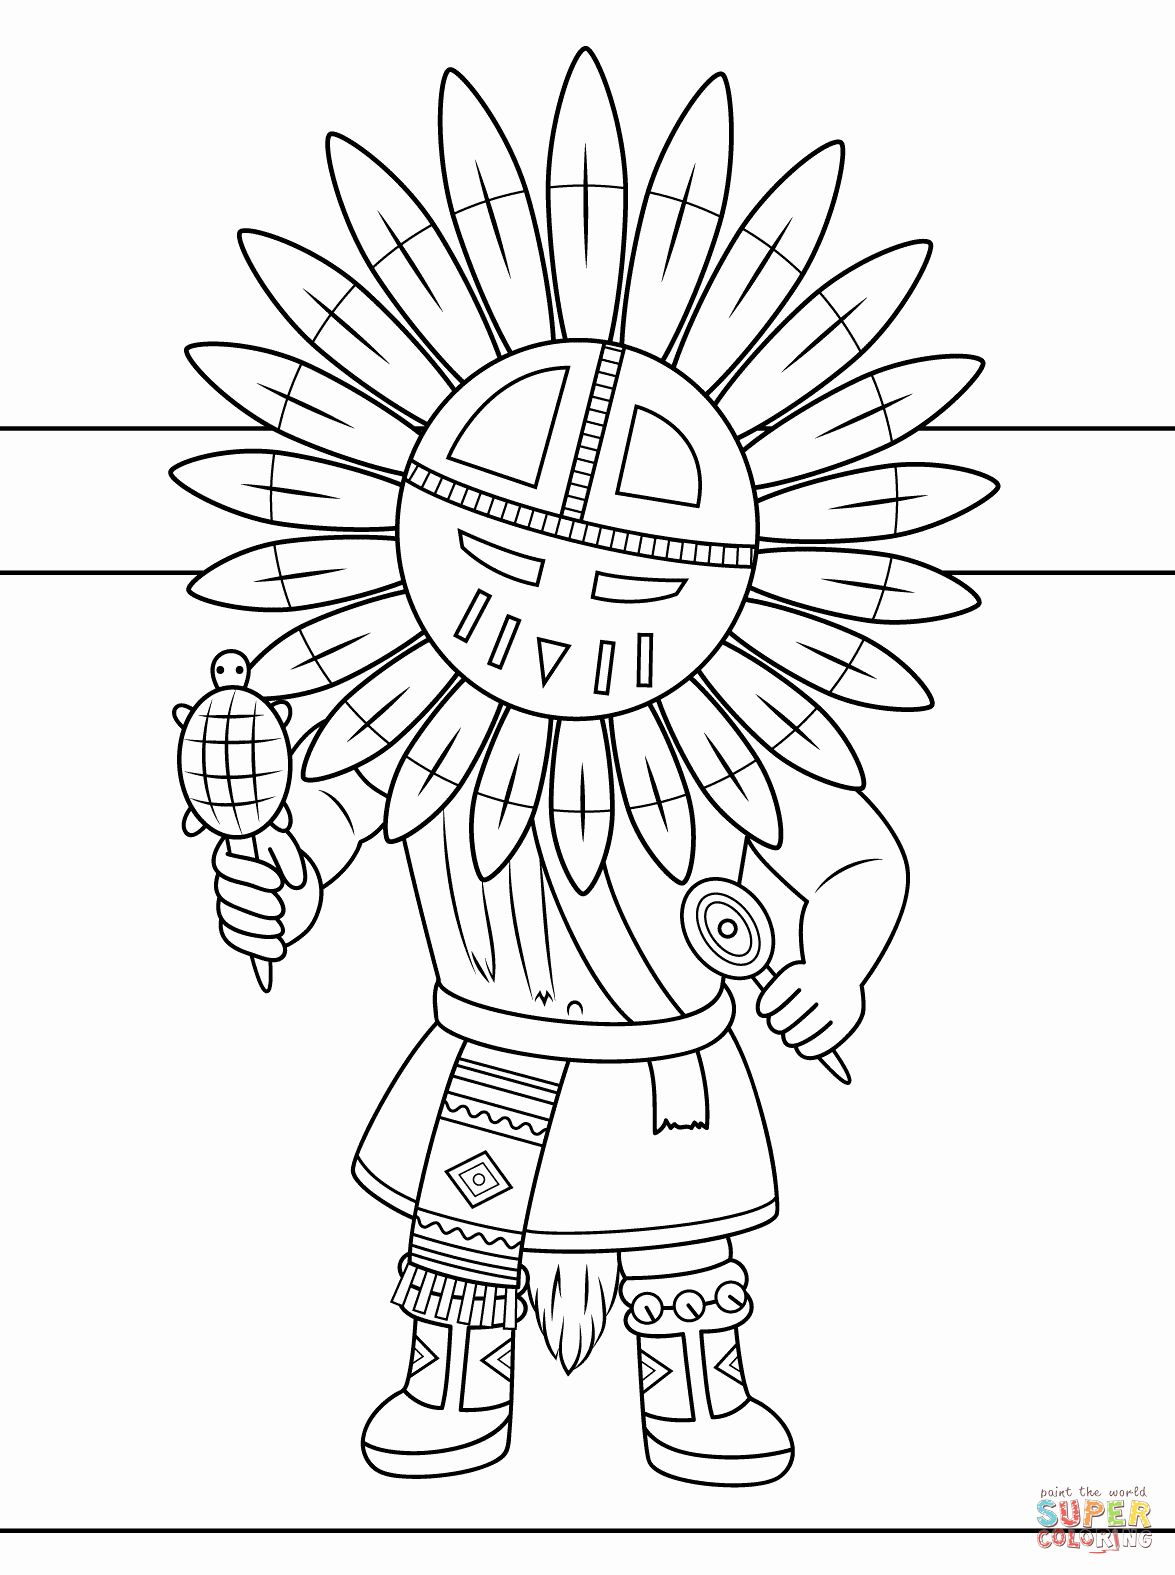 Native American Coloring Book Best Of Indian Headdress Coloring